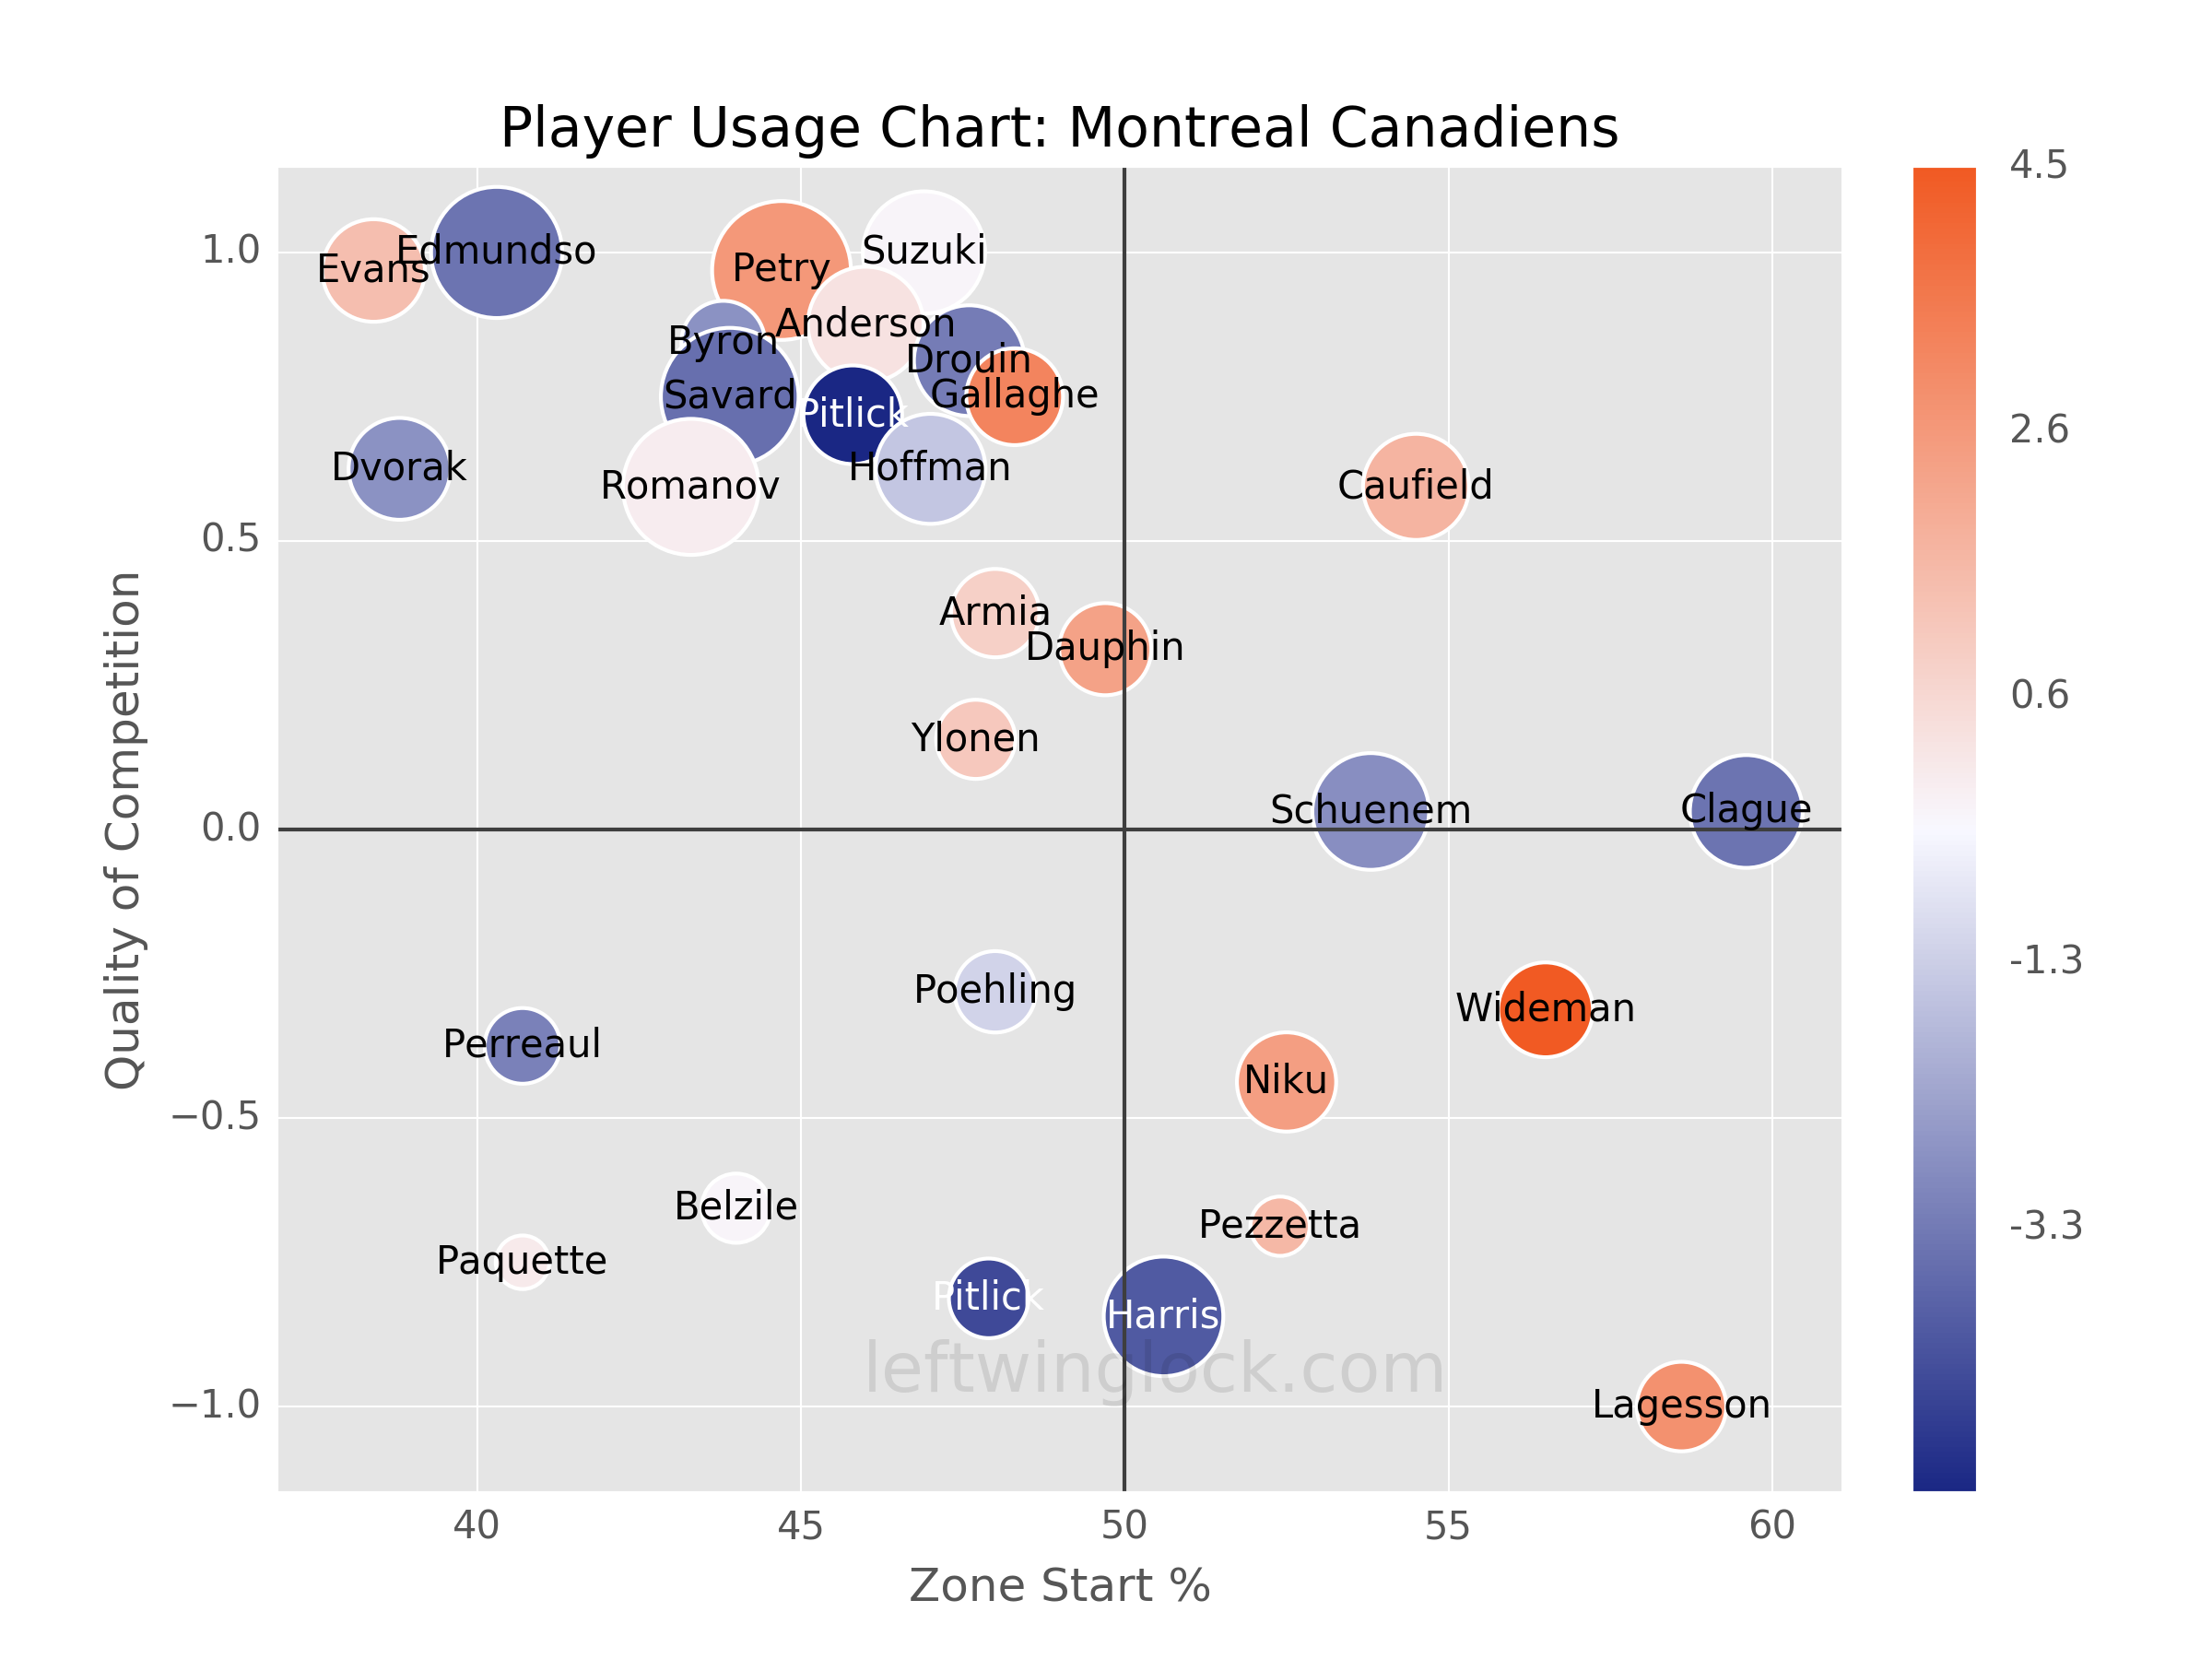 Montreal Canadiens Player Usage Chart